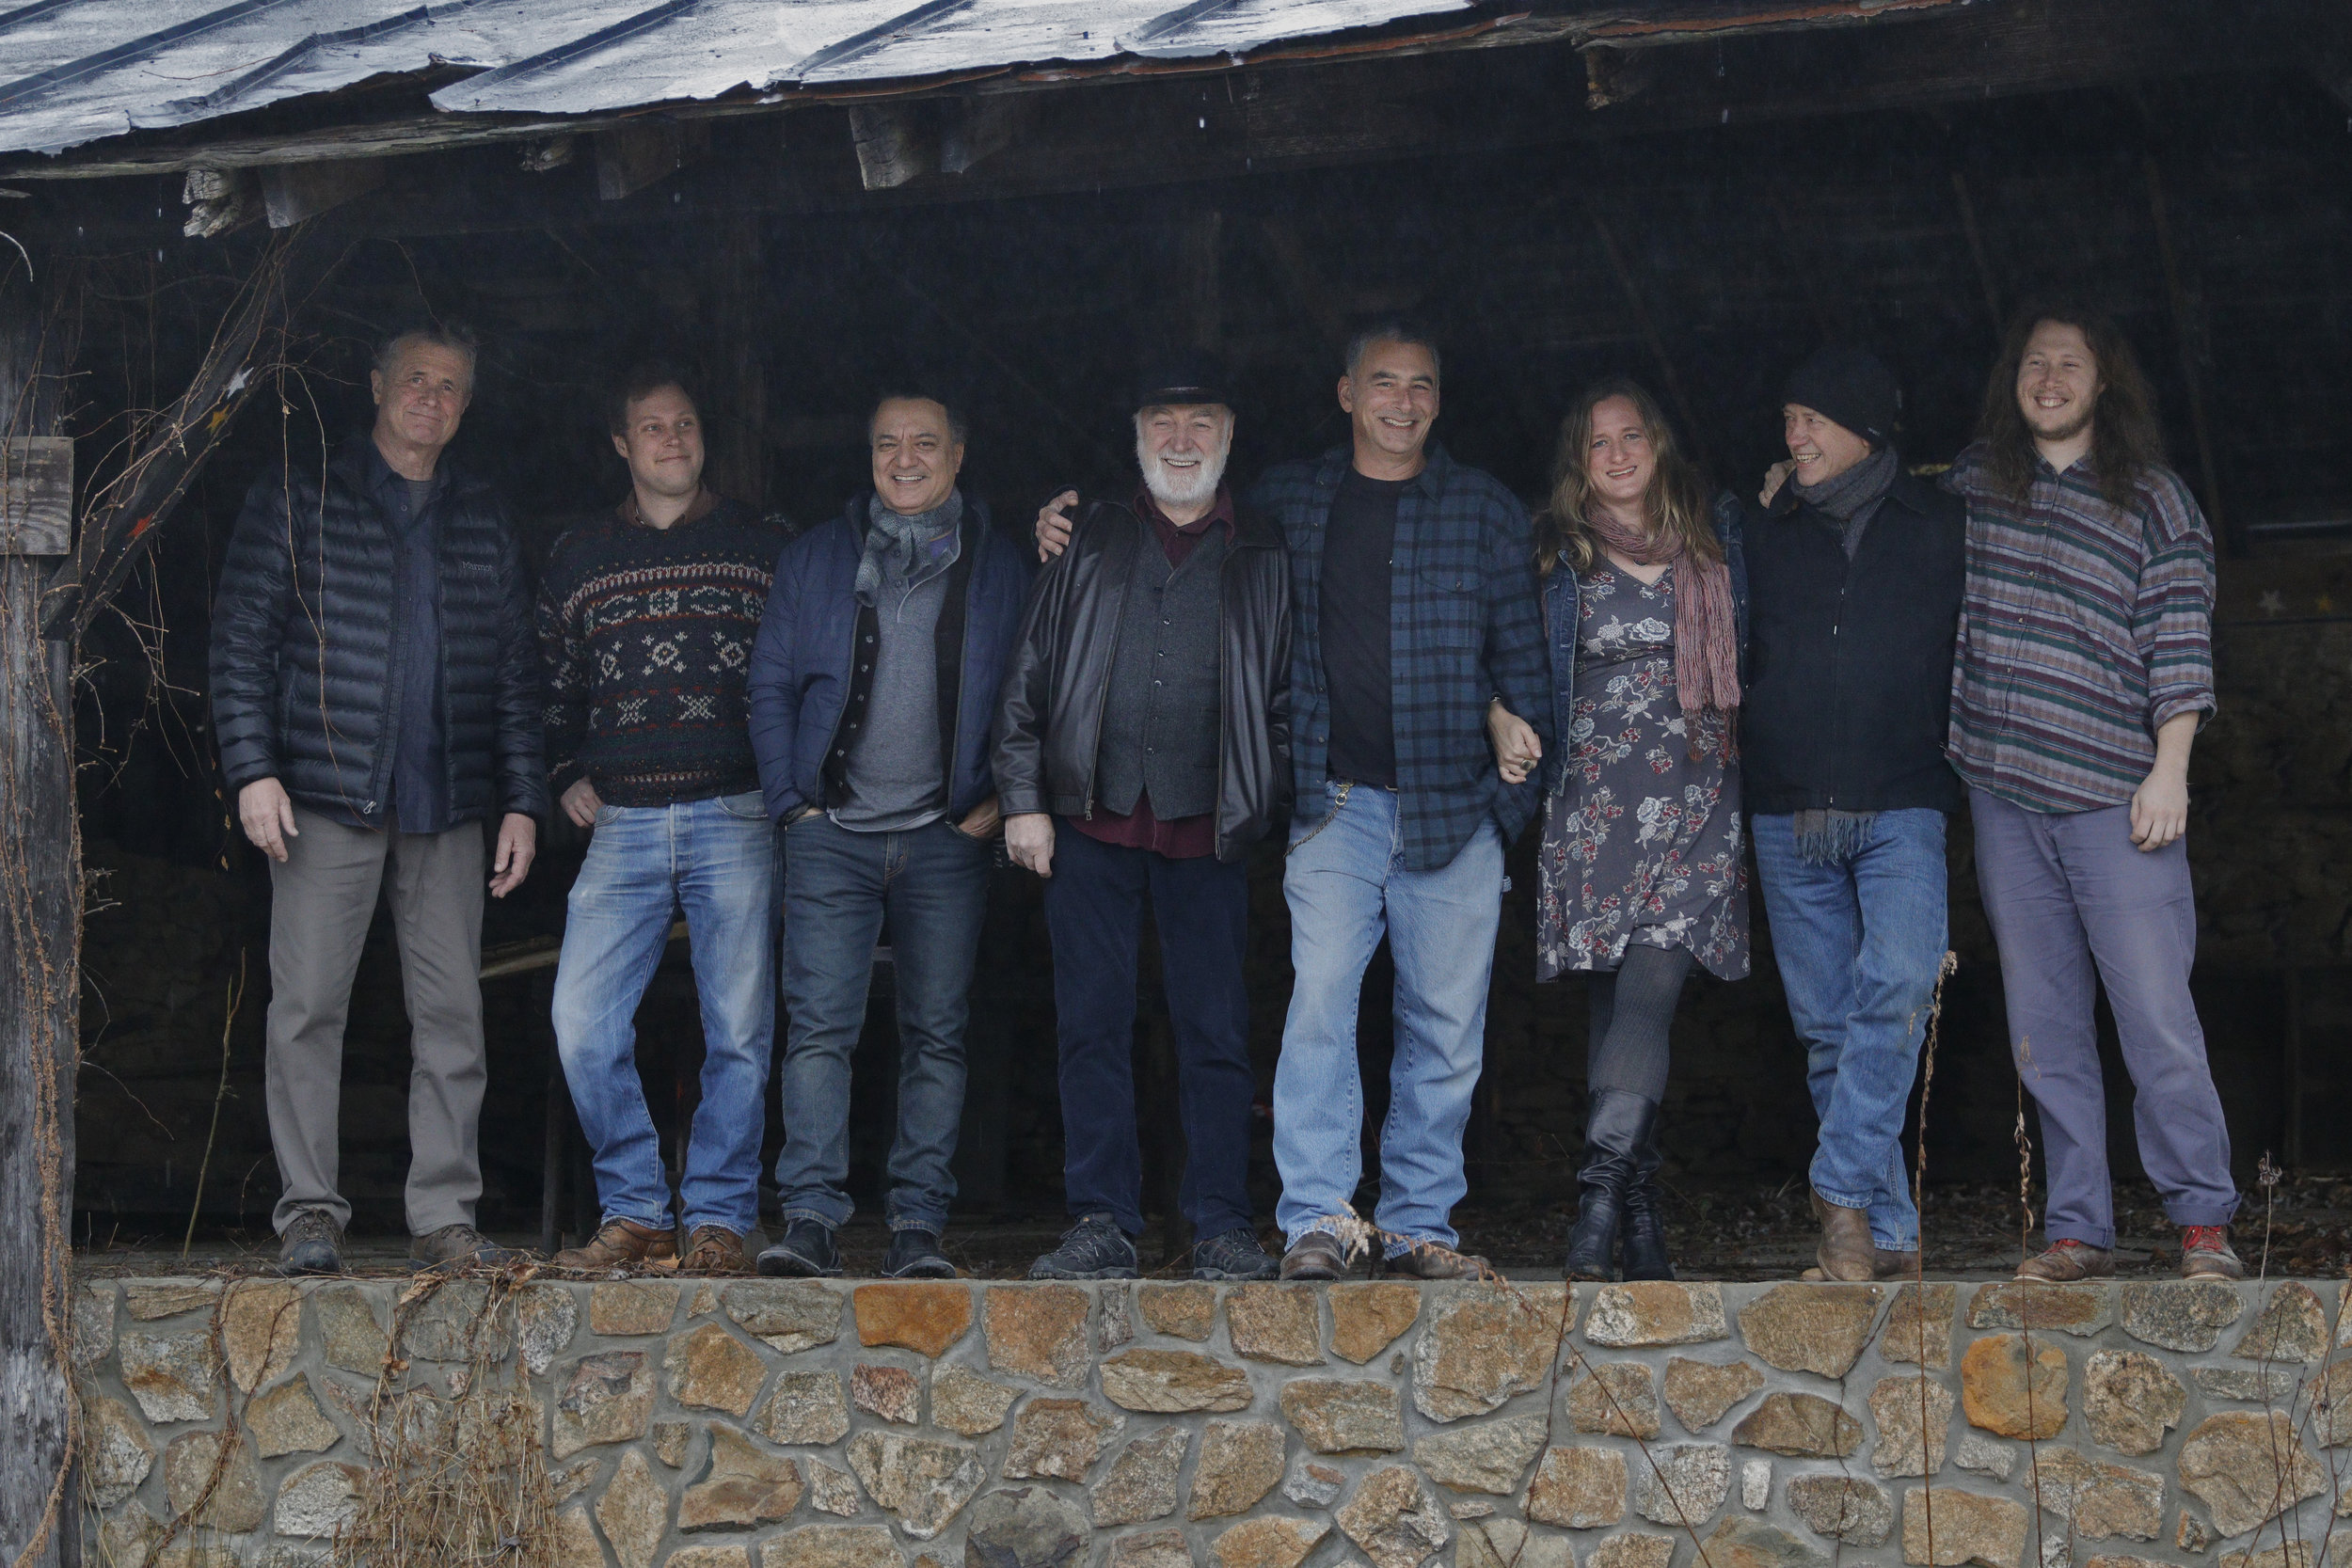 "L to R: Terry Waggener (bass), Jonathan Marquisee (dobro, banjo), Shahin Shahida (guitar, vocals), Robert ""Smiggy"" Smith (guitar, Wurlitzer, vocals), Drew Smith (drum, cymbals, percussion, vocals), Miranda Hope (guitar, vocals), Vincent Day (guitar, ukulele, mandolin, vocals), and Forrest Marquisee (guitar, pedal steel, vocals). Also, not shown: Frank Austin (guitar, vocals), Vincent Henry (clarinet, bass clarinet), and Mack Stacks (producer, bass, percussion, vocals)."